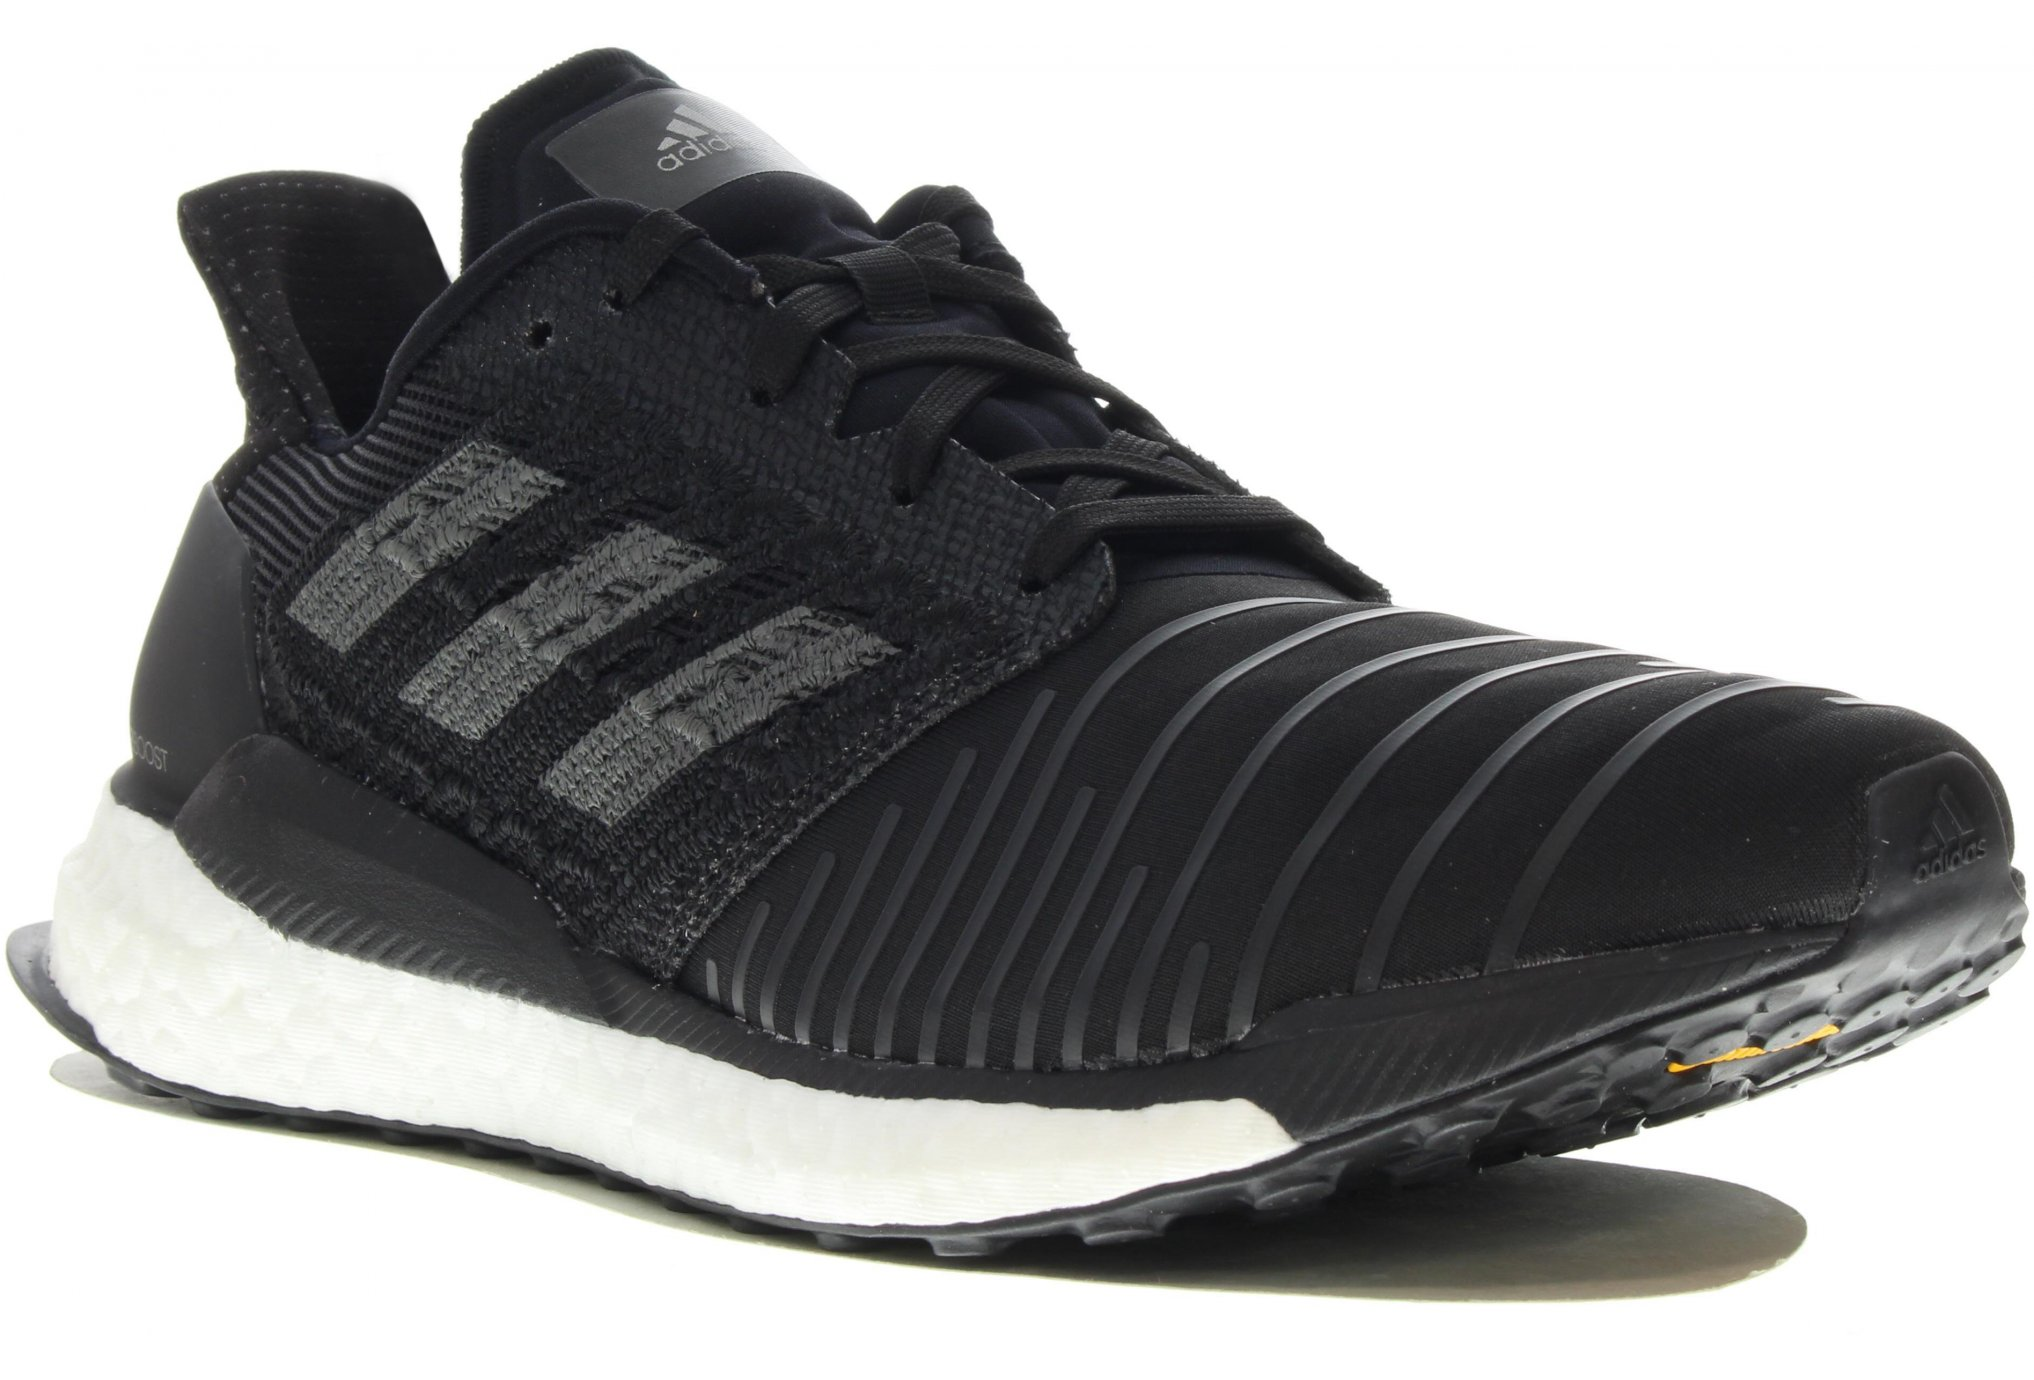 St Supernova Performance Adidas M Men's QCoWrdBxe